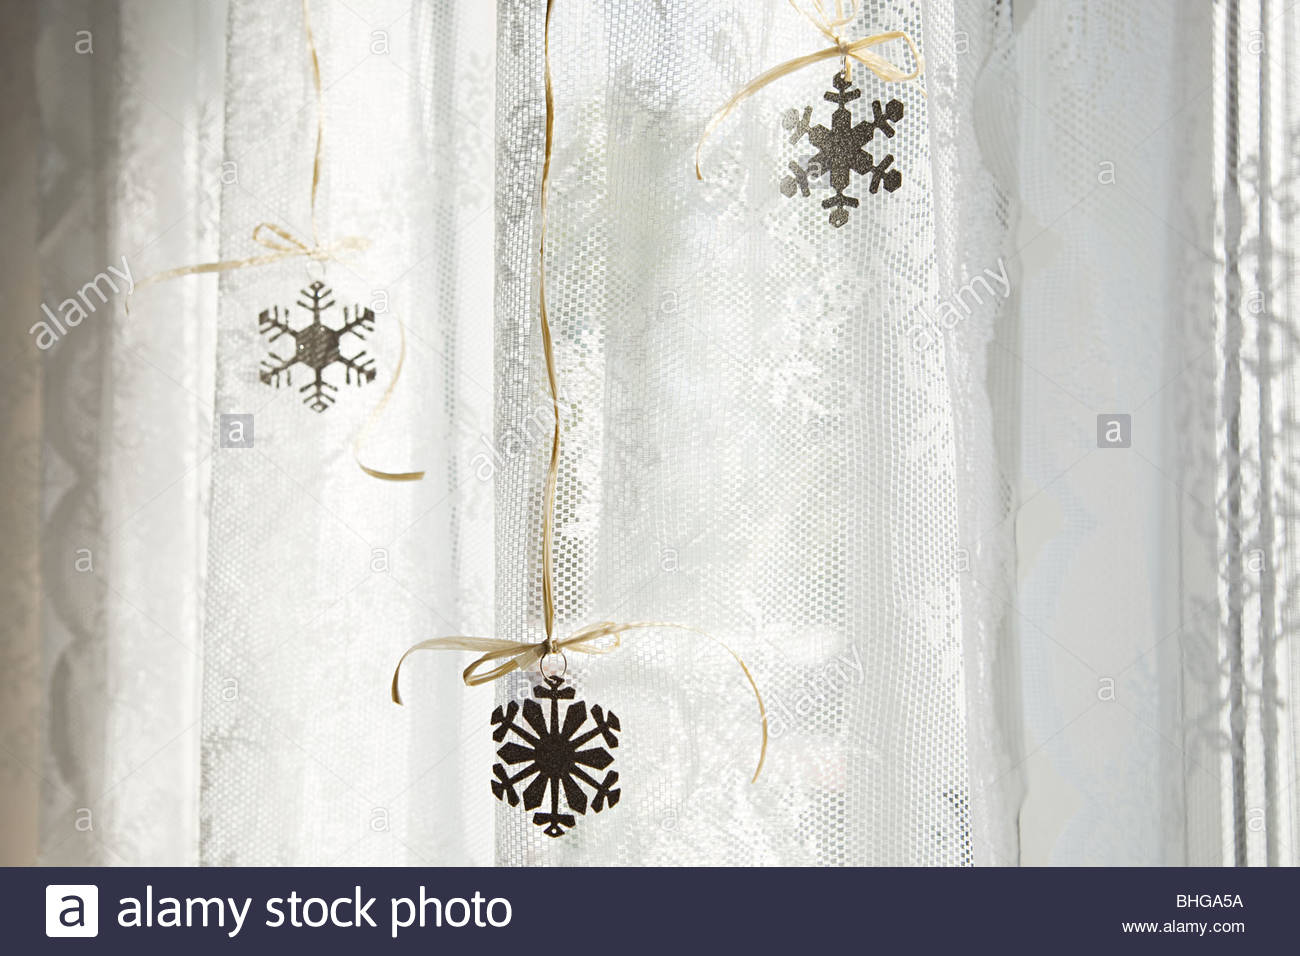 Snowflake decorations in window - Stock Image